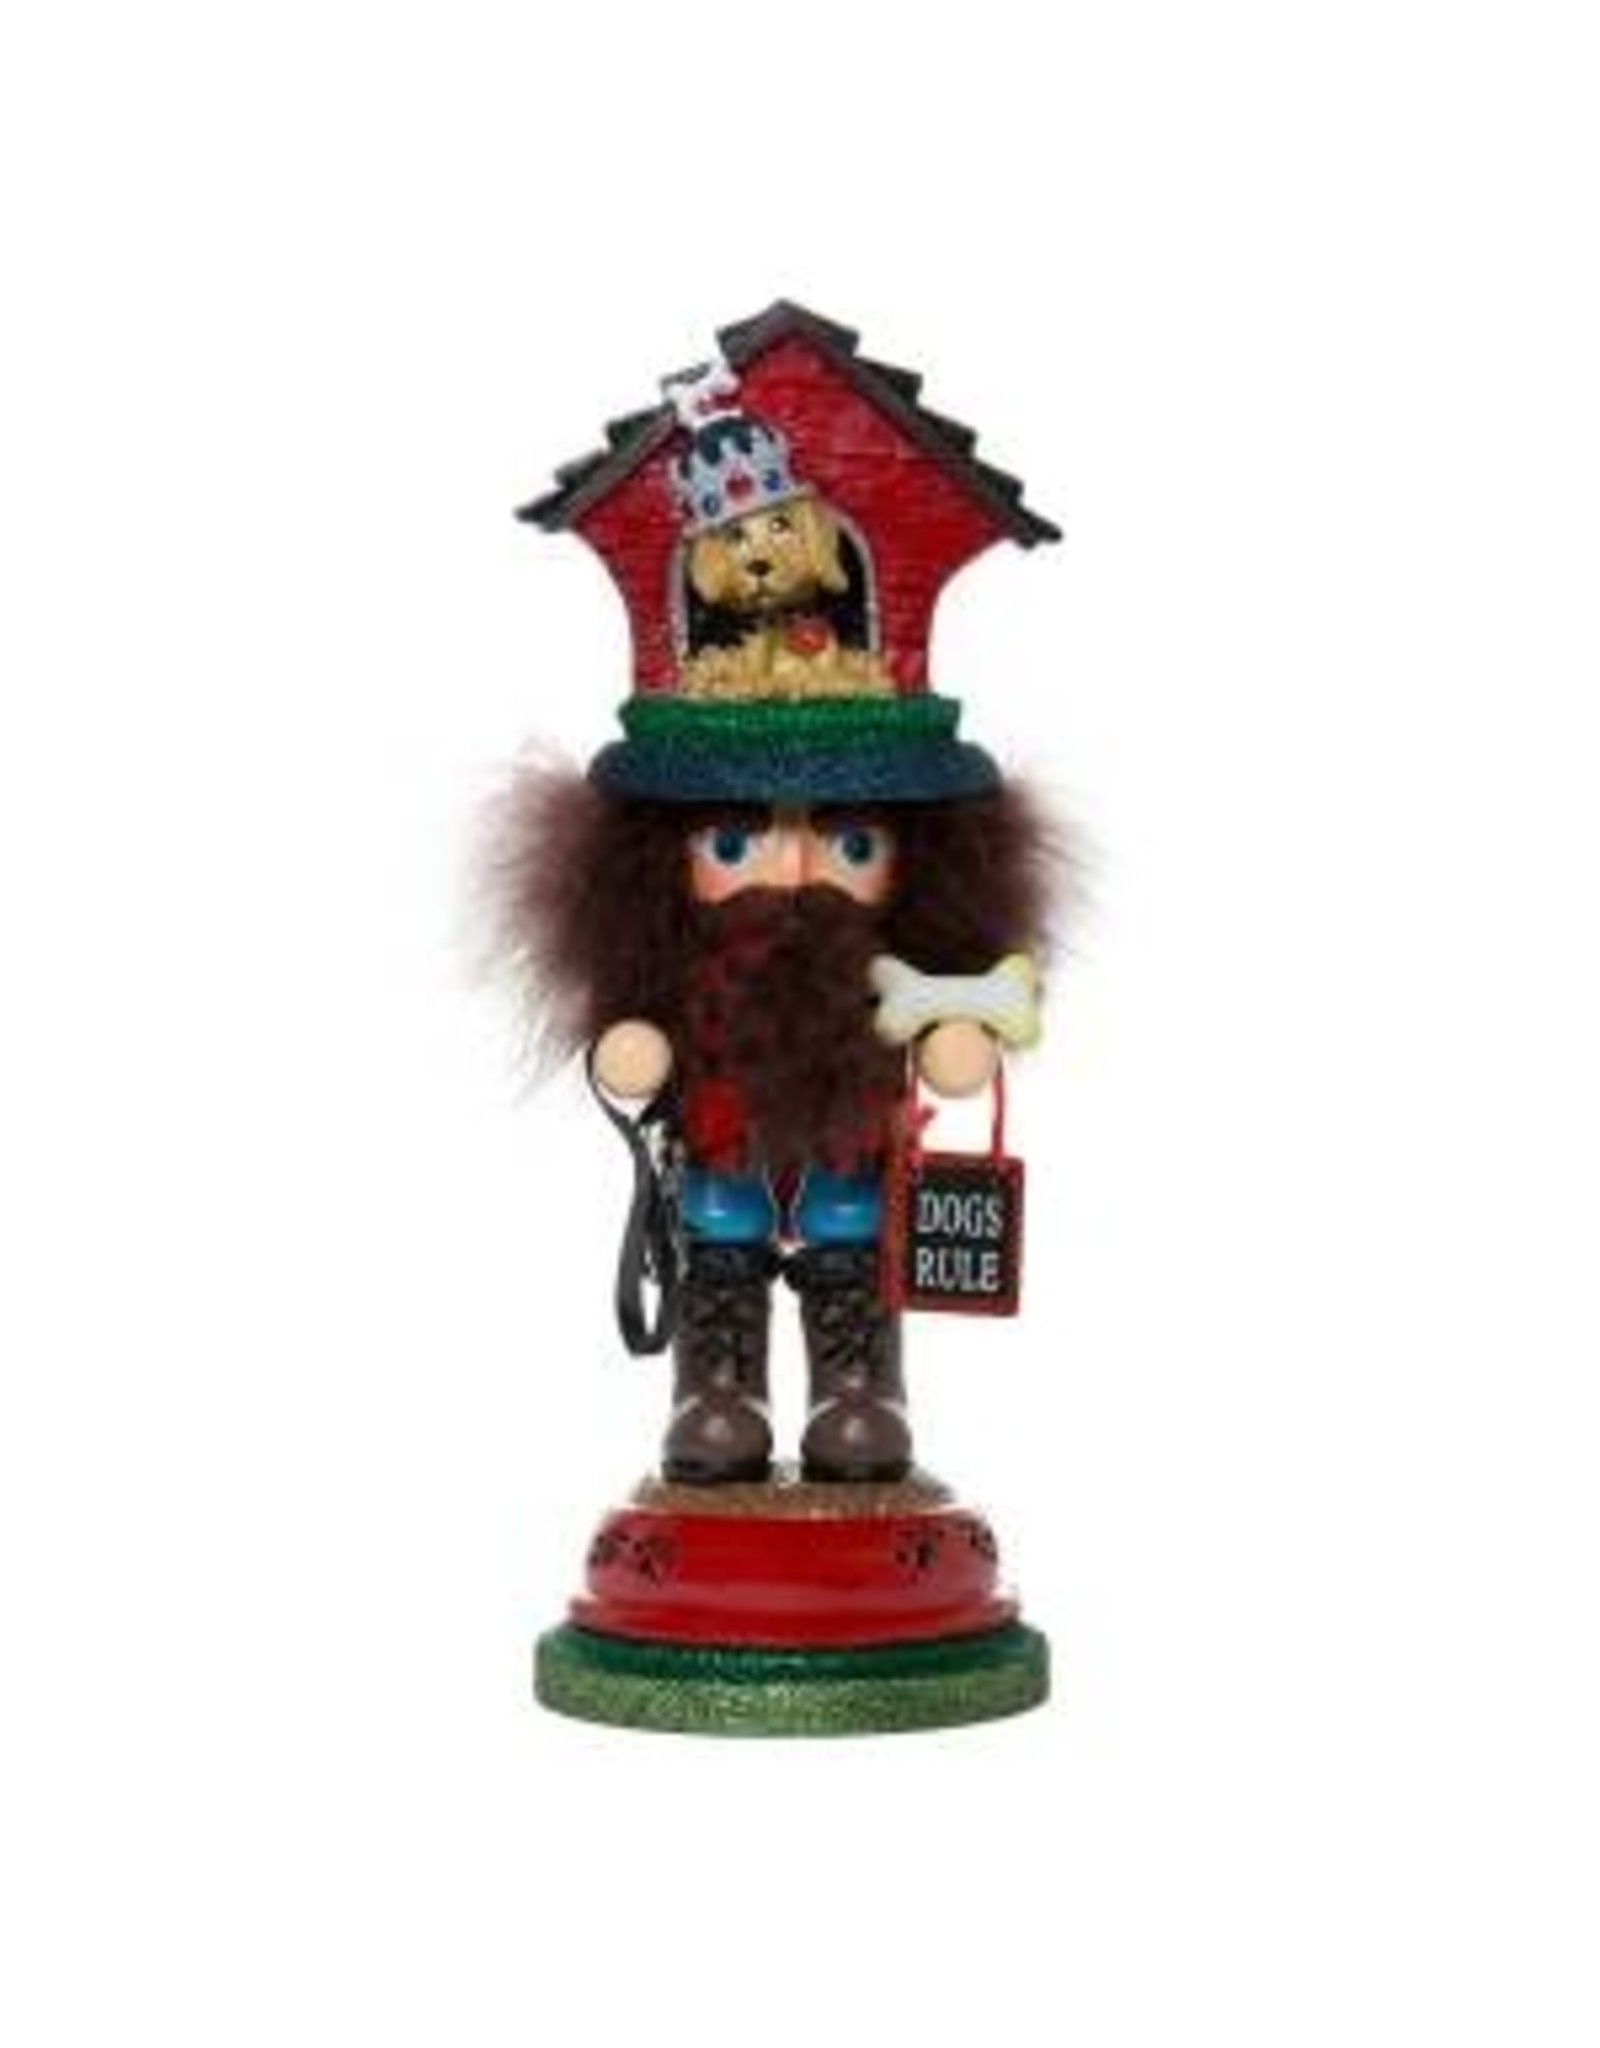 Kurt S. Adler Doghouse Hat Nutcracker